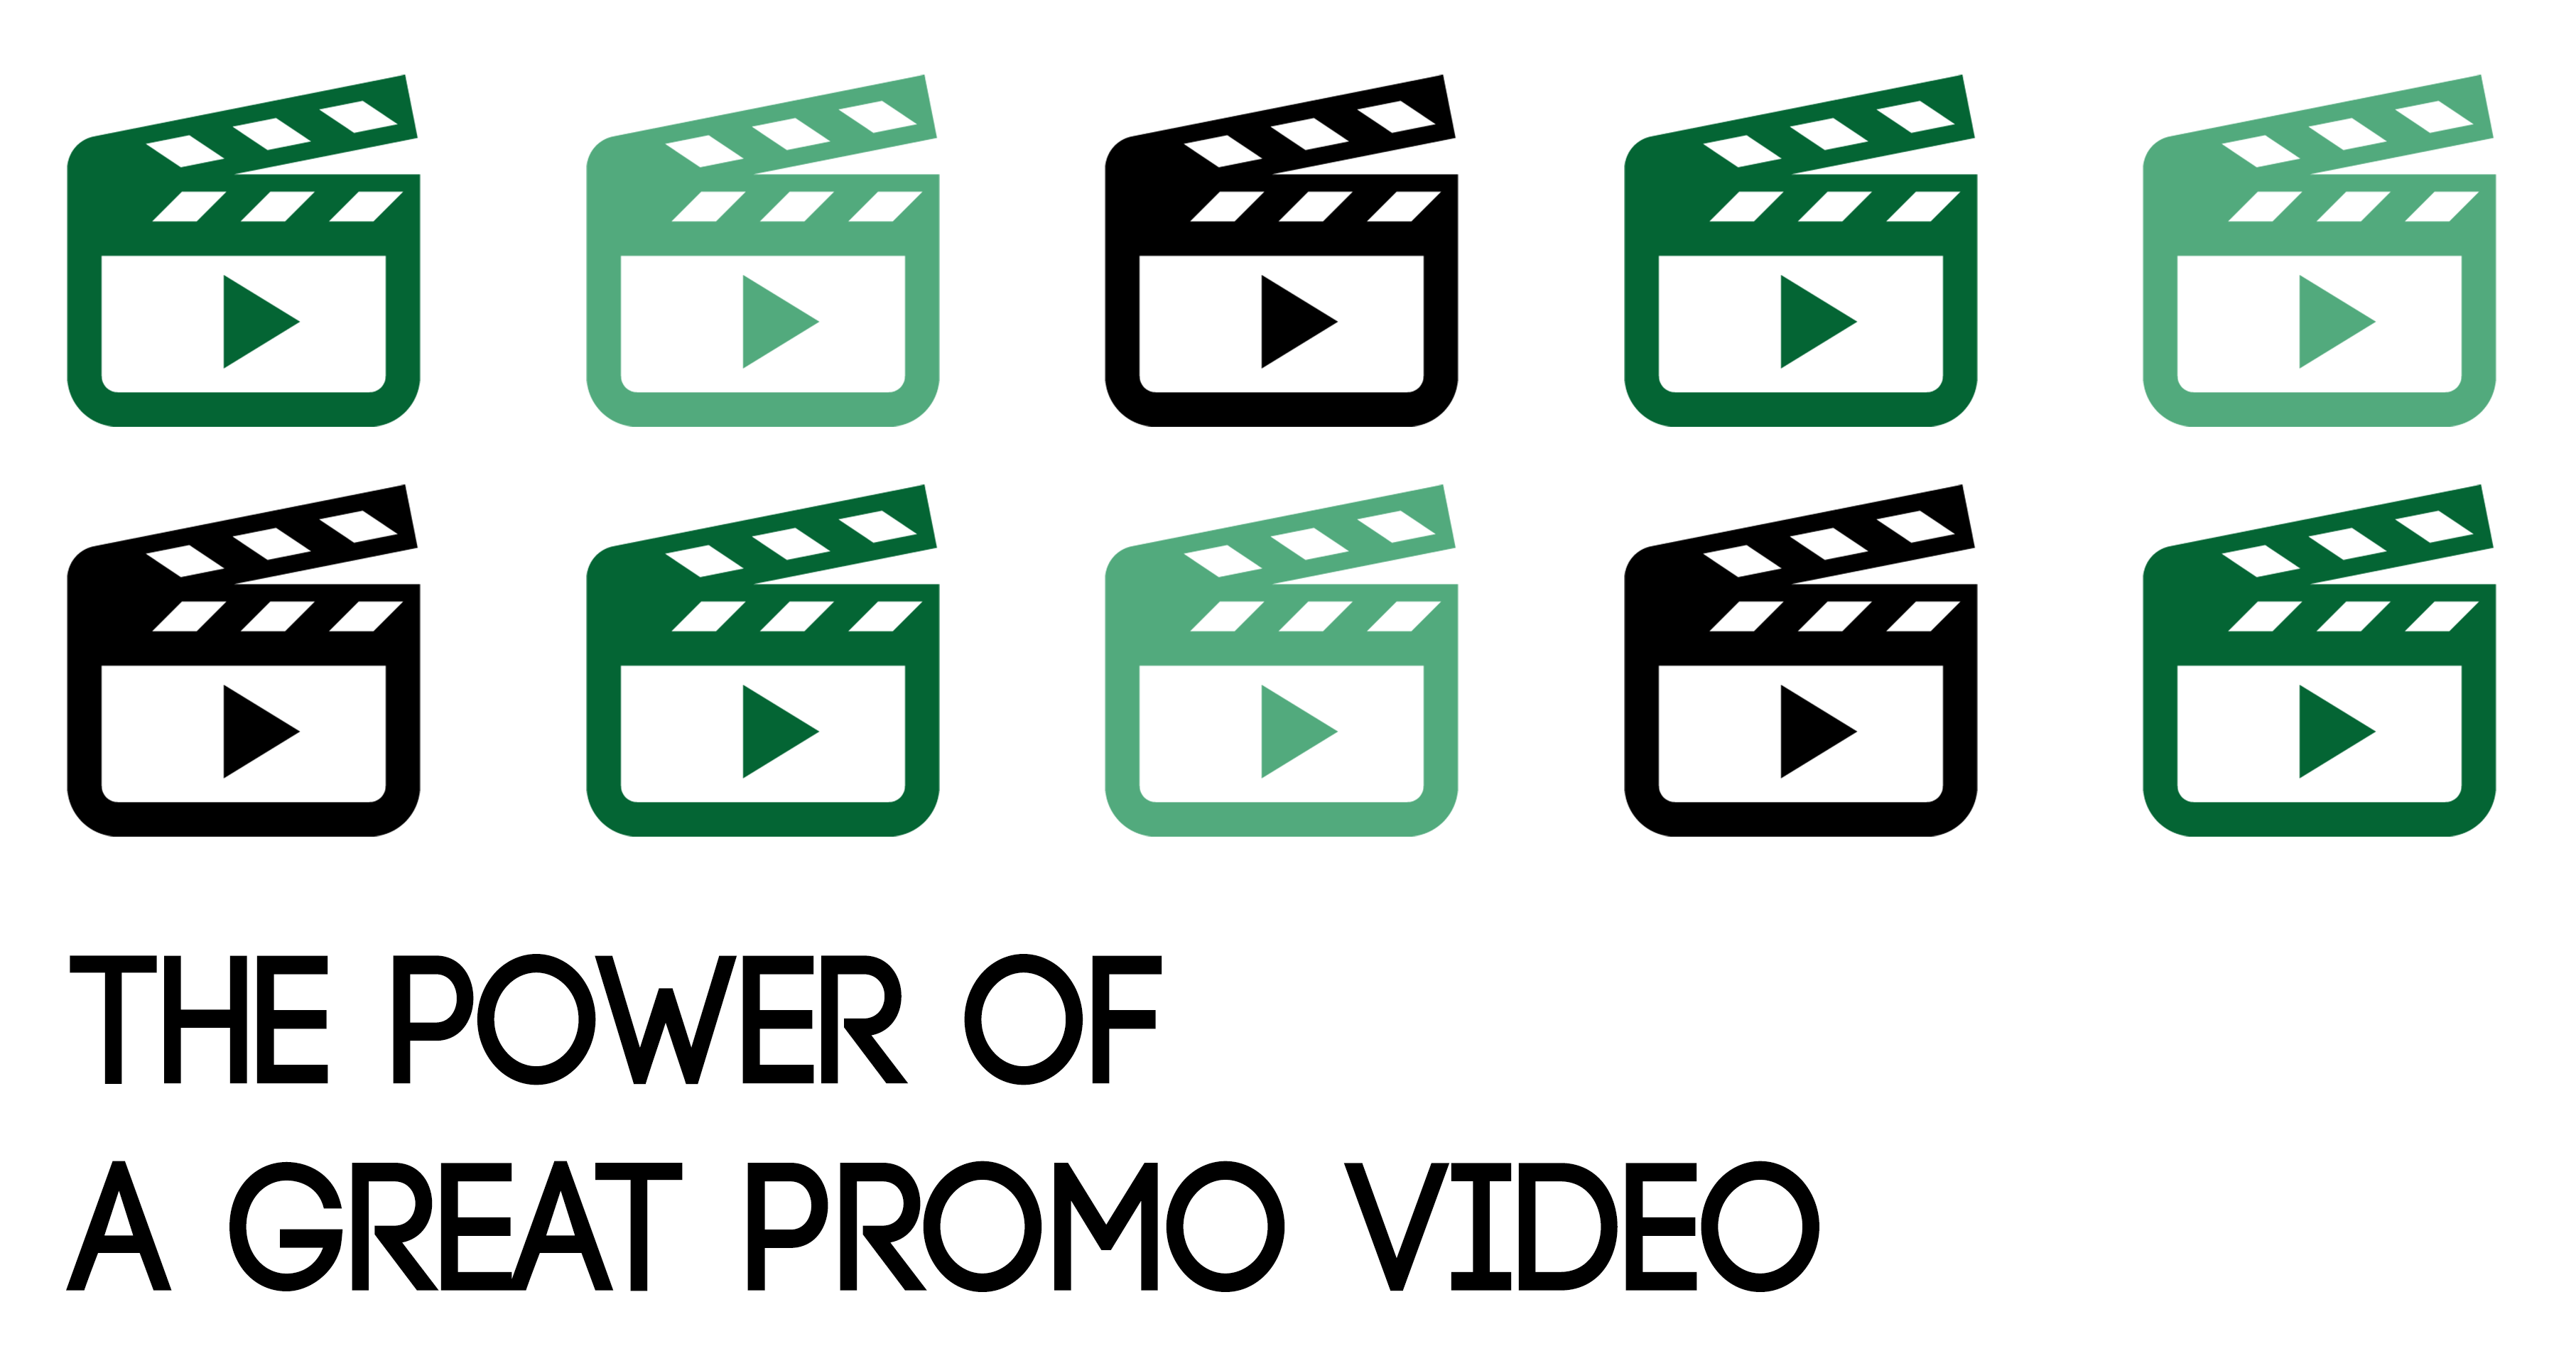 The Power of a GREAT Promo Video